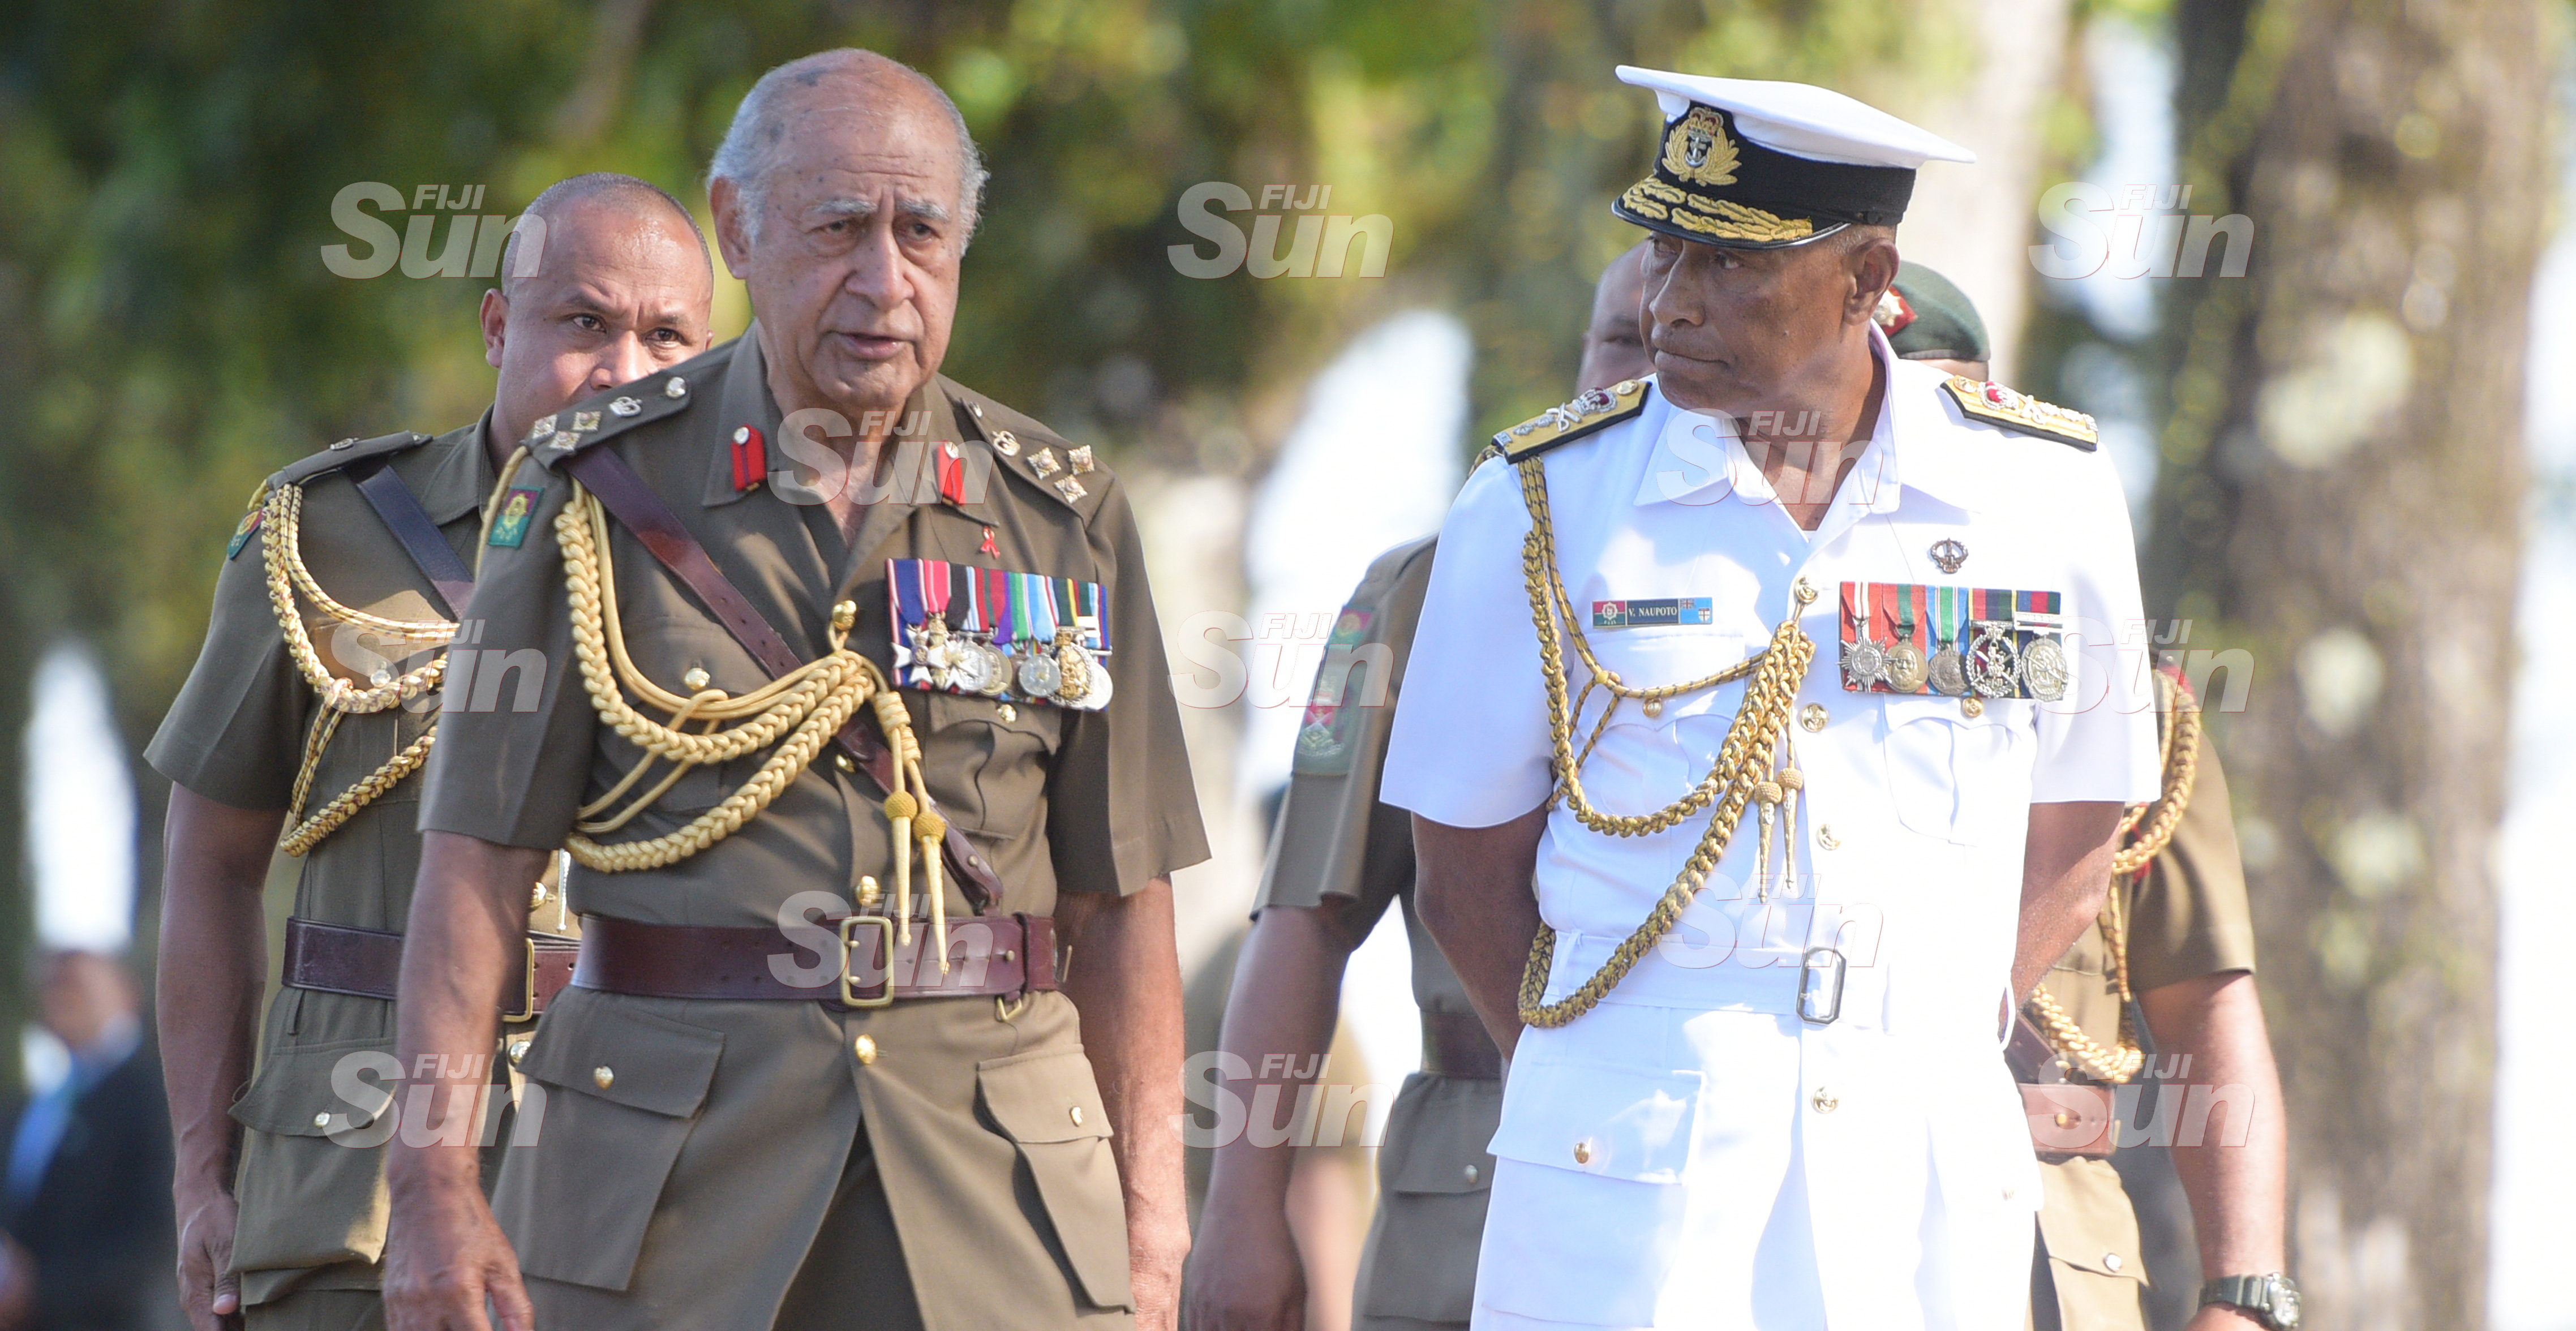 Brigadier General (Retired) Ratu Epeli Nailatikau (left) and RFMF Commander Rear Admiral Viliame Naupoto following the inauguration of the Colonel of the Regiment guard of honour parade on July 21, 2020. Photo: Ronald Kumar.